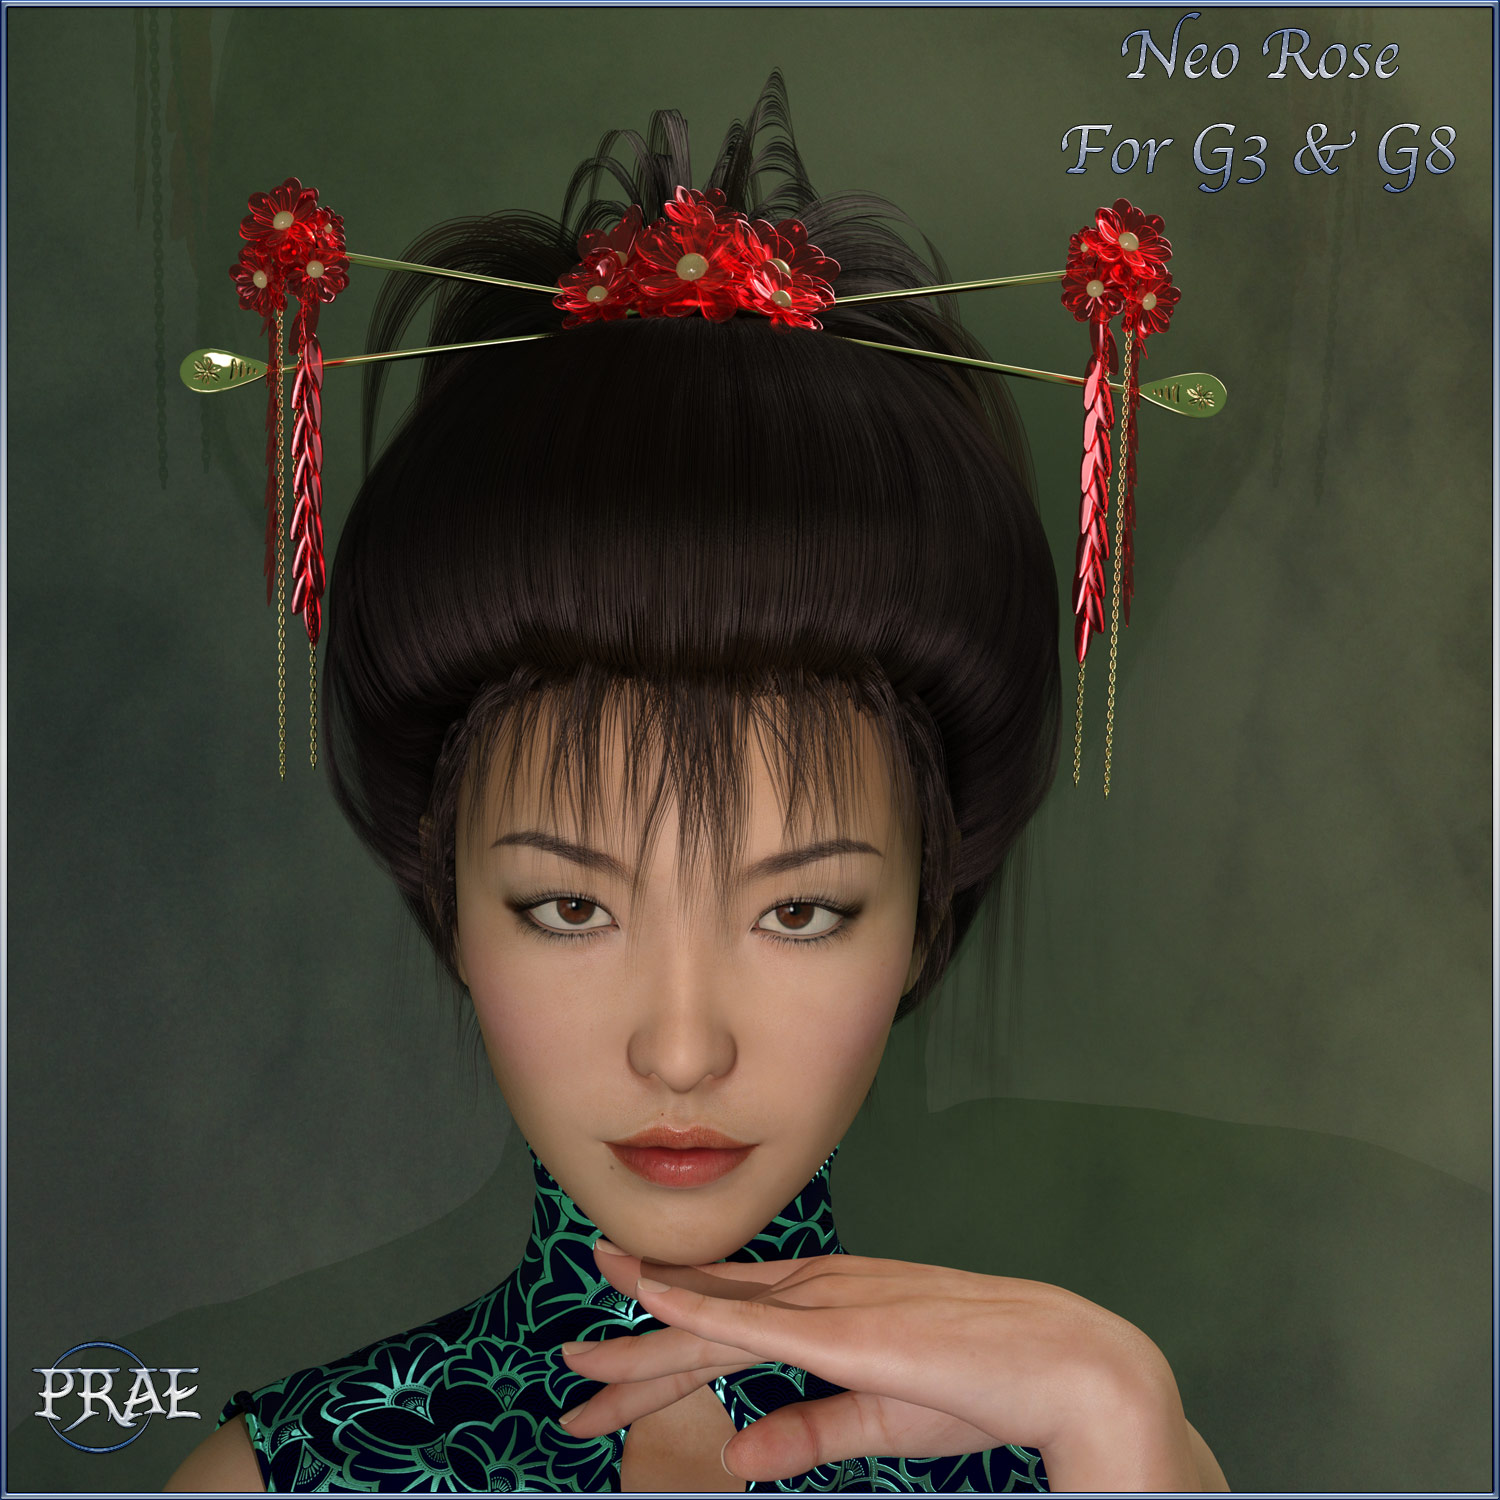 Prae-Neo Rose Hair G3/G8 Daz